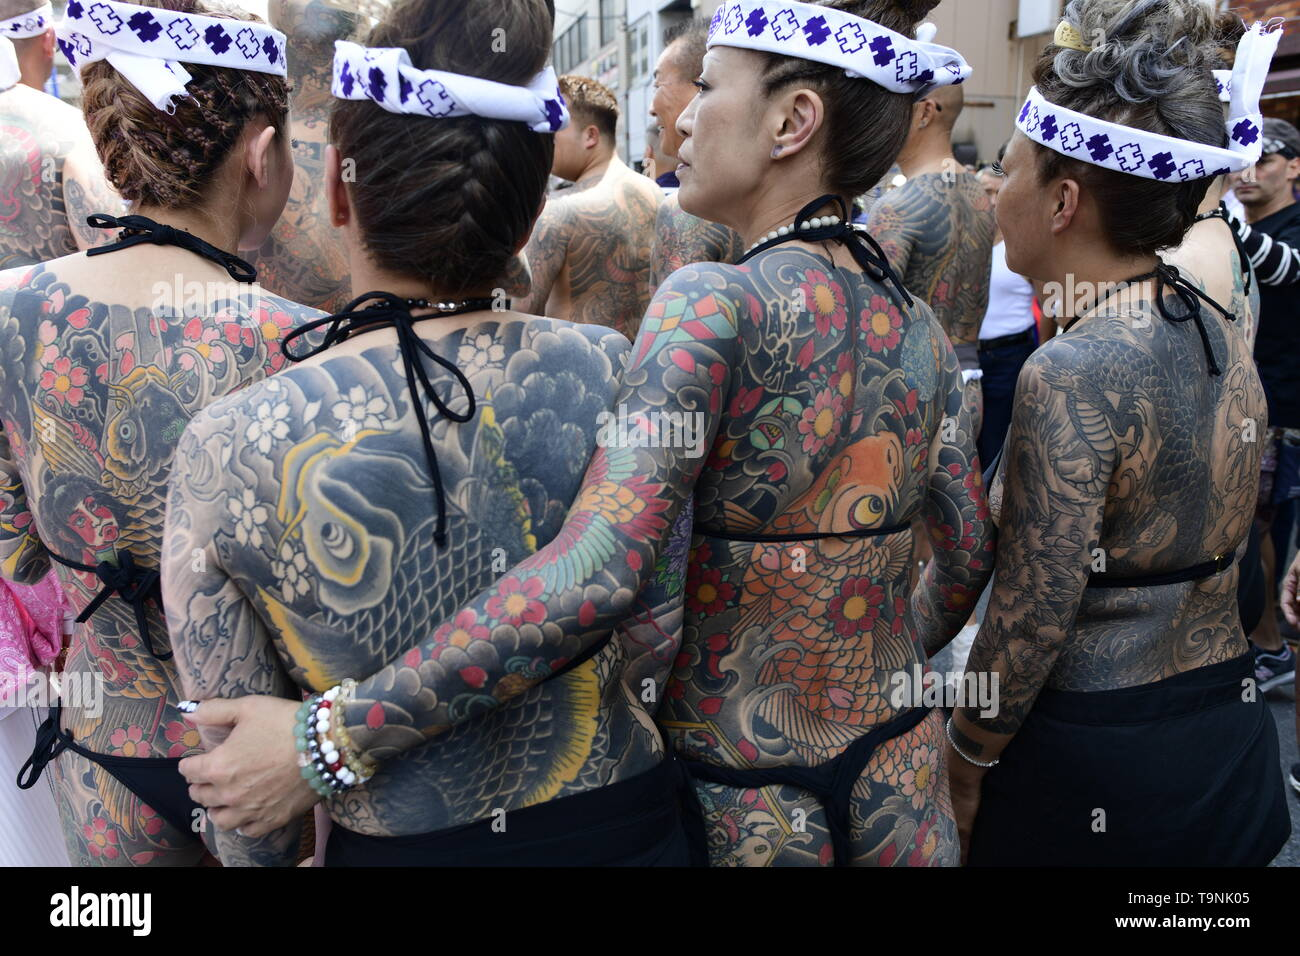 "TOKYO, JAPAN - MAY 18: Heavily tattooed Japanese women stand in the street as they wait for the portable shrine in the street of Asakusa during ""Sanja Matsuri"" on May 18, 2019 in Tokyo, Japan. A boisterous traditional mikoshi (portable shrine) is carried in the streets of Asakusa to bring goodluck, blessings and prosperity to the area and its inhabitants. (Photo: Richard Atrero de Guzman/ AFLO) Stock Photo"